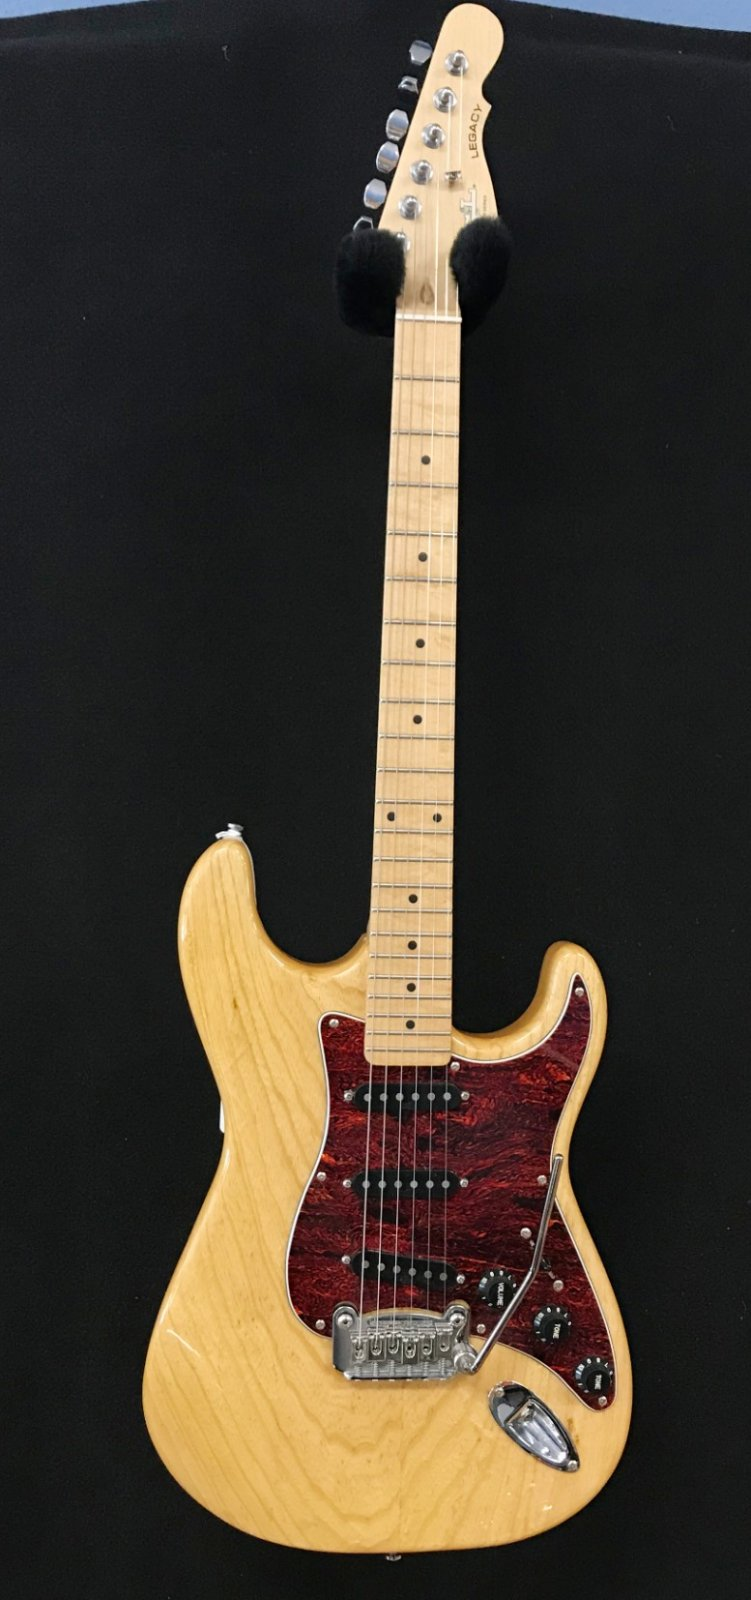 Used G&L tribute legcay